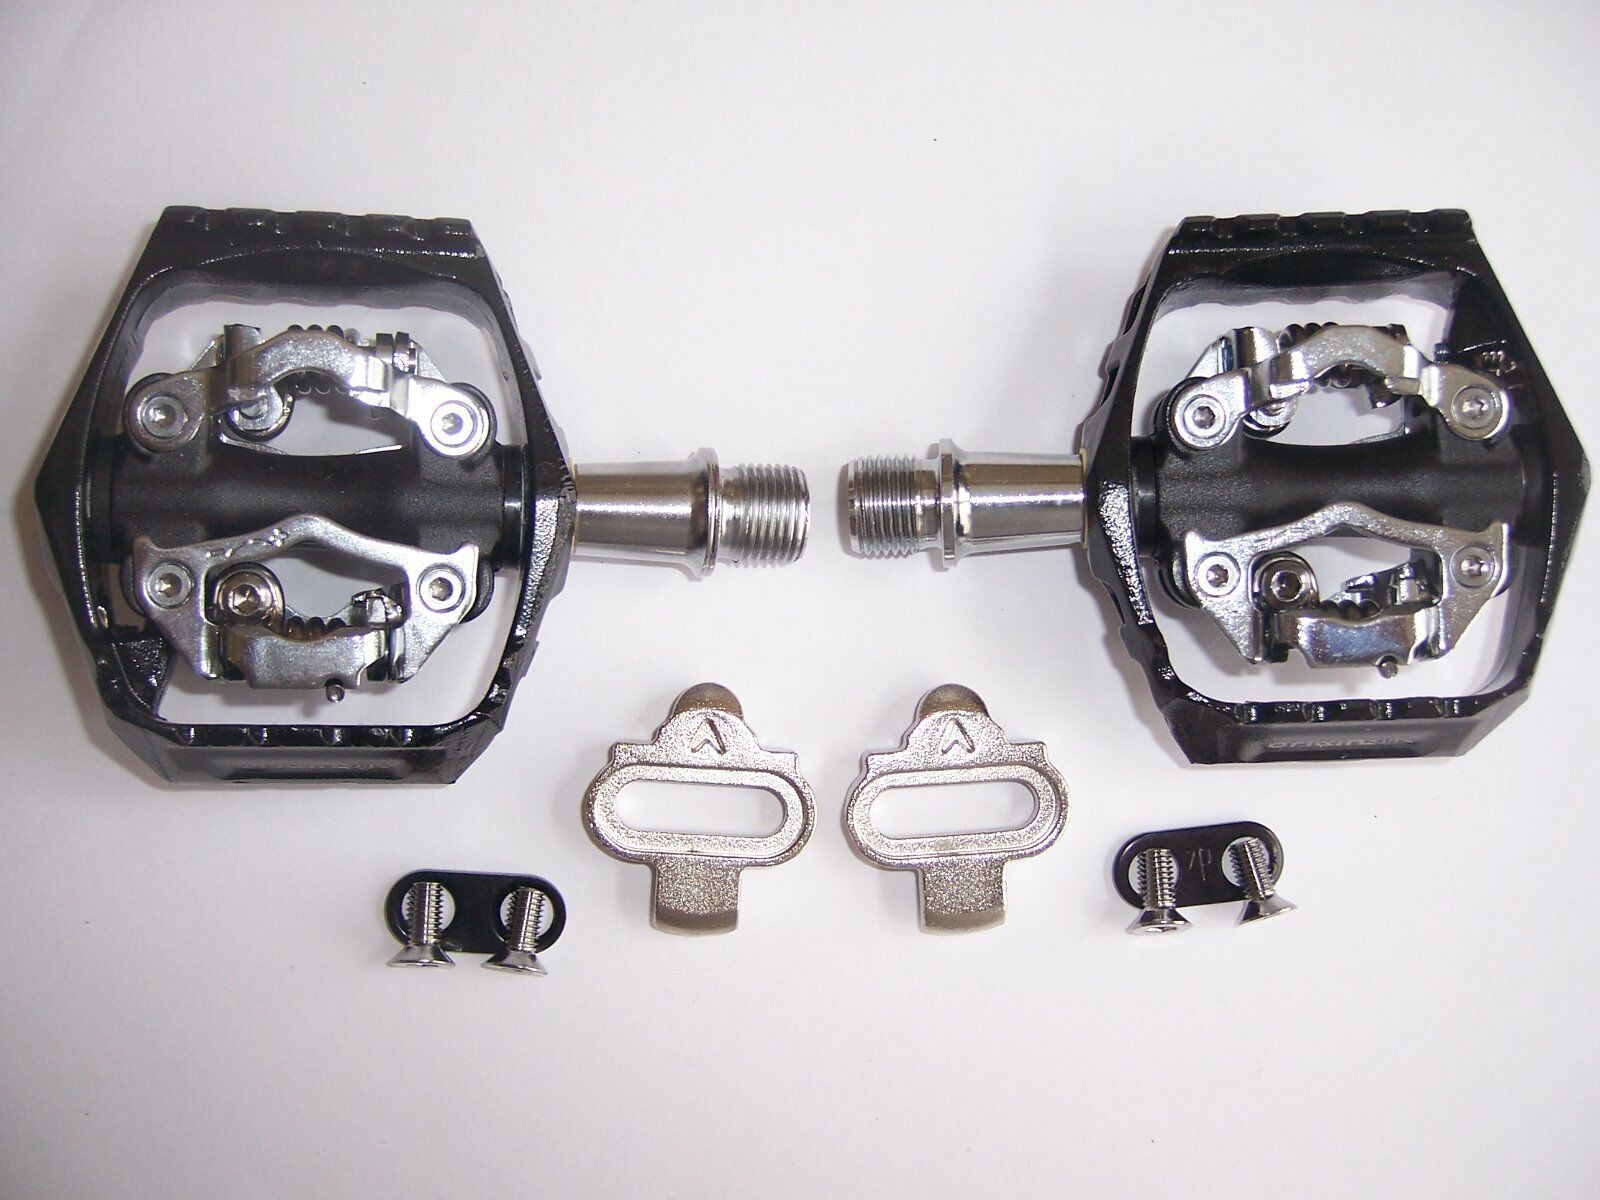 PEDALS with CLEATS ORIGIN8 ULTIM8 MTB  DOUBLE CLIPLESS  9 16 BK GY